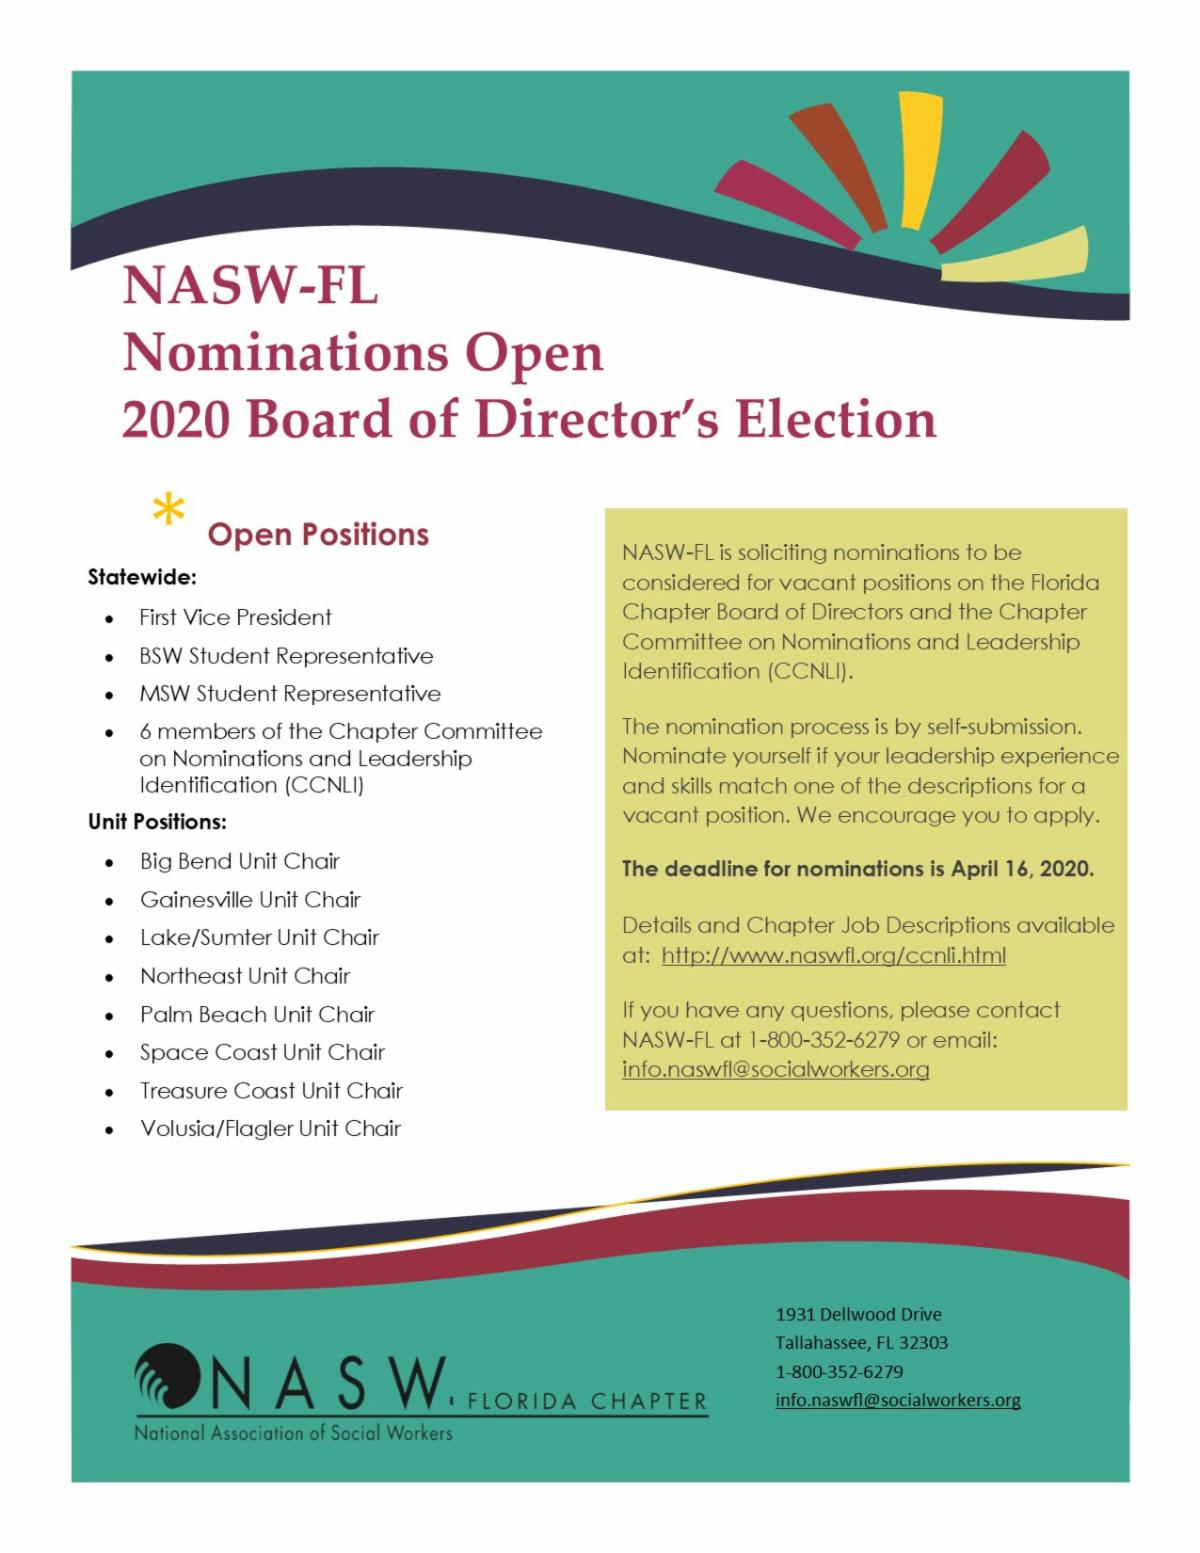 Nominations for Board of Directors Elections